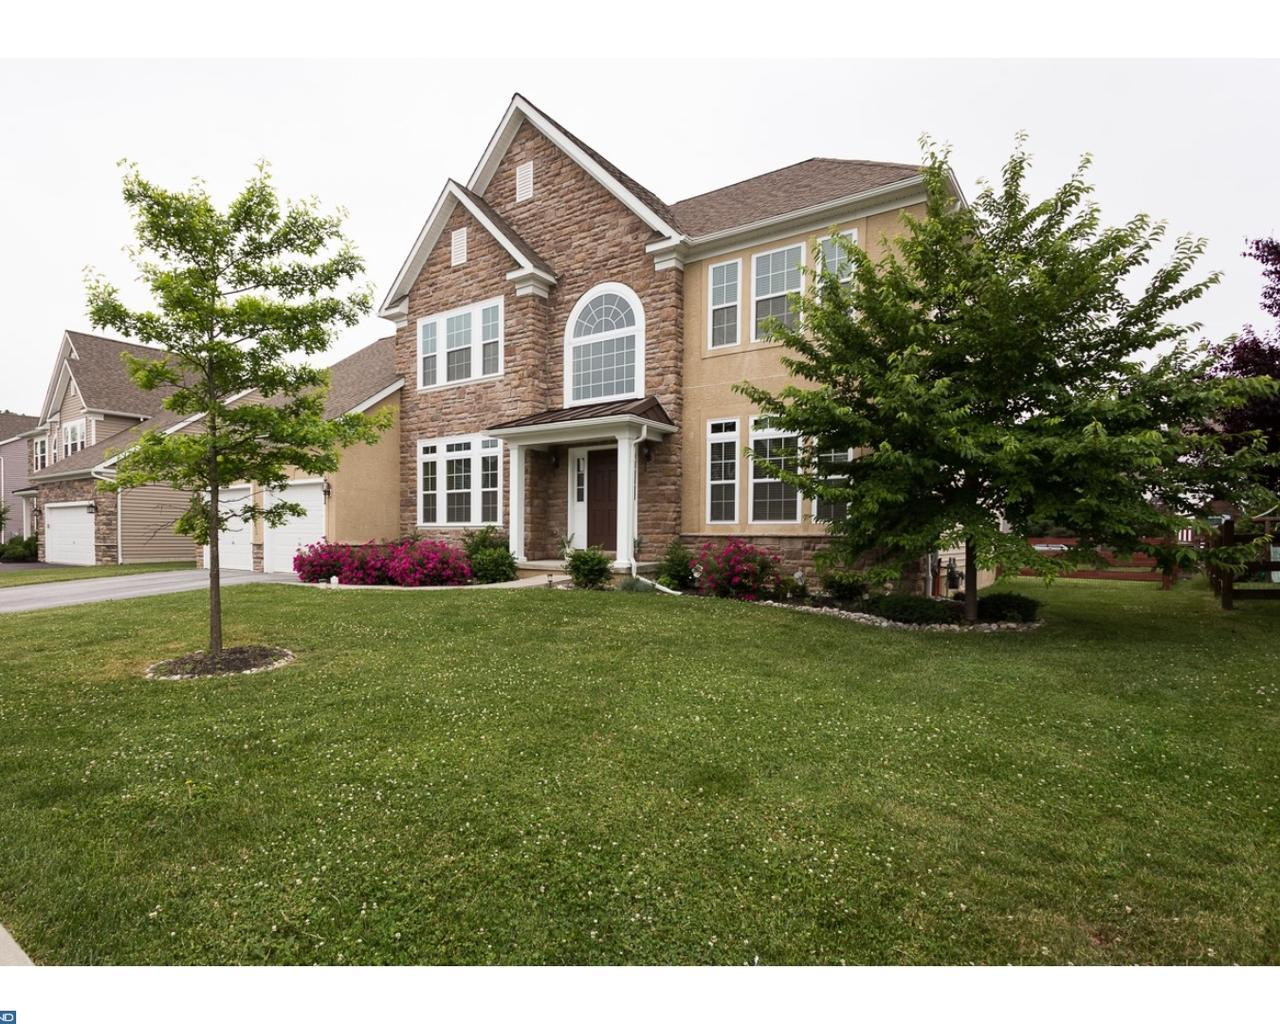 Property for sale at 3193 SILBURY HILL, Downingtown,  PA 19335